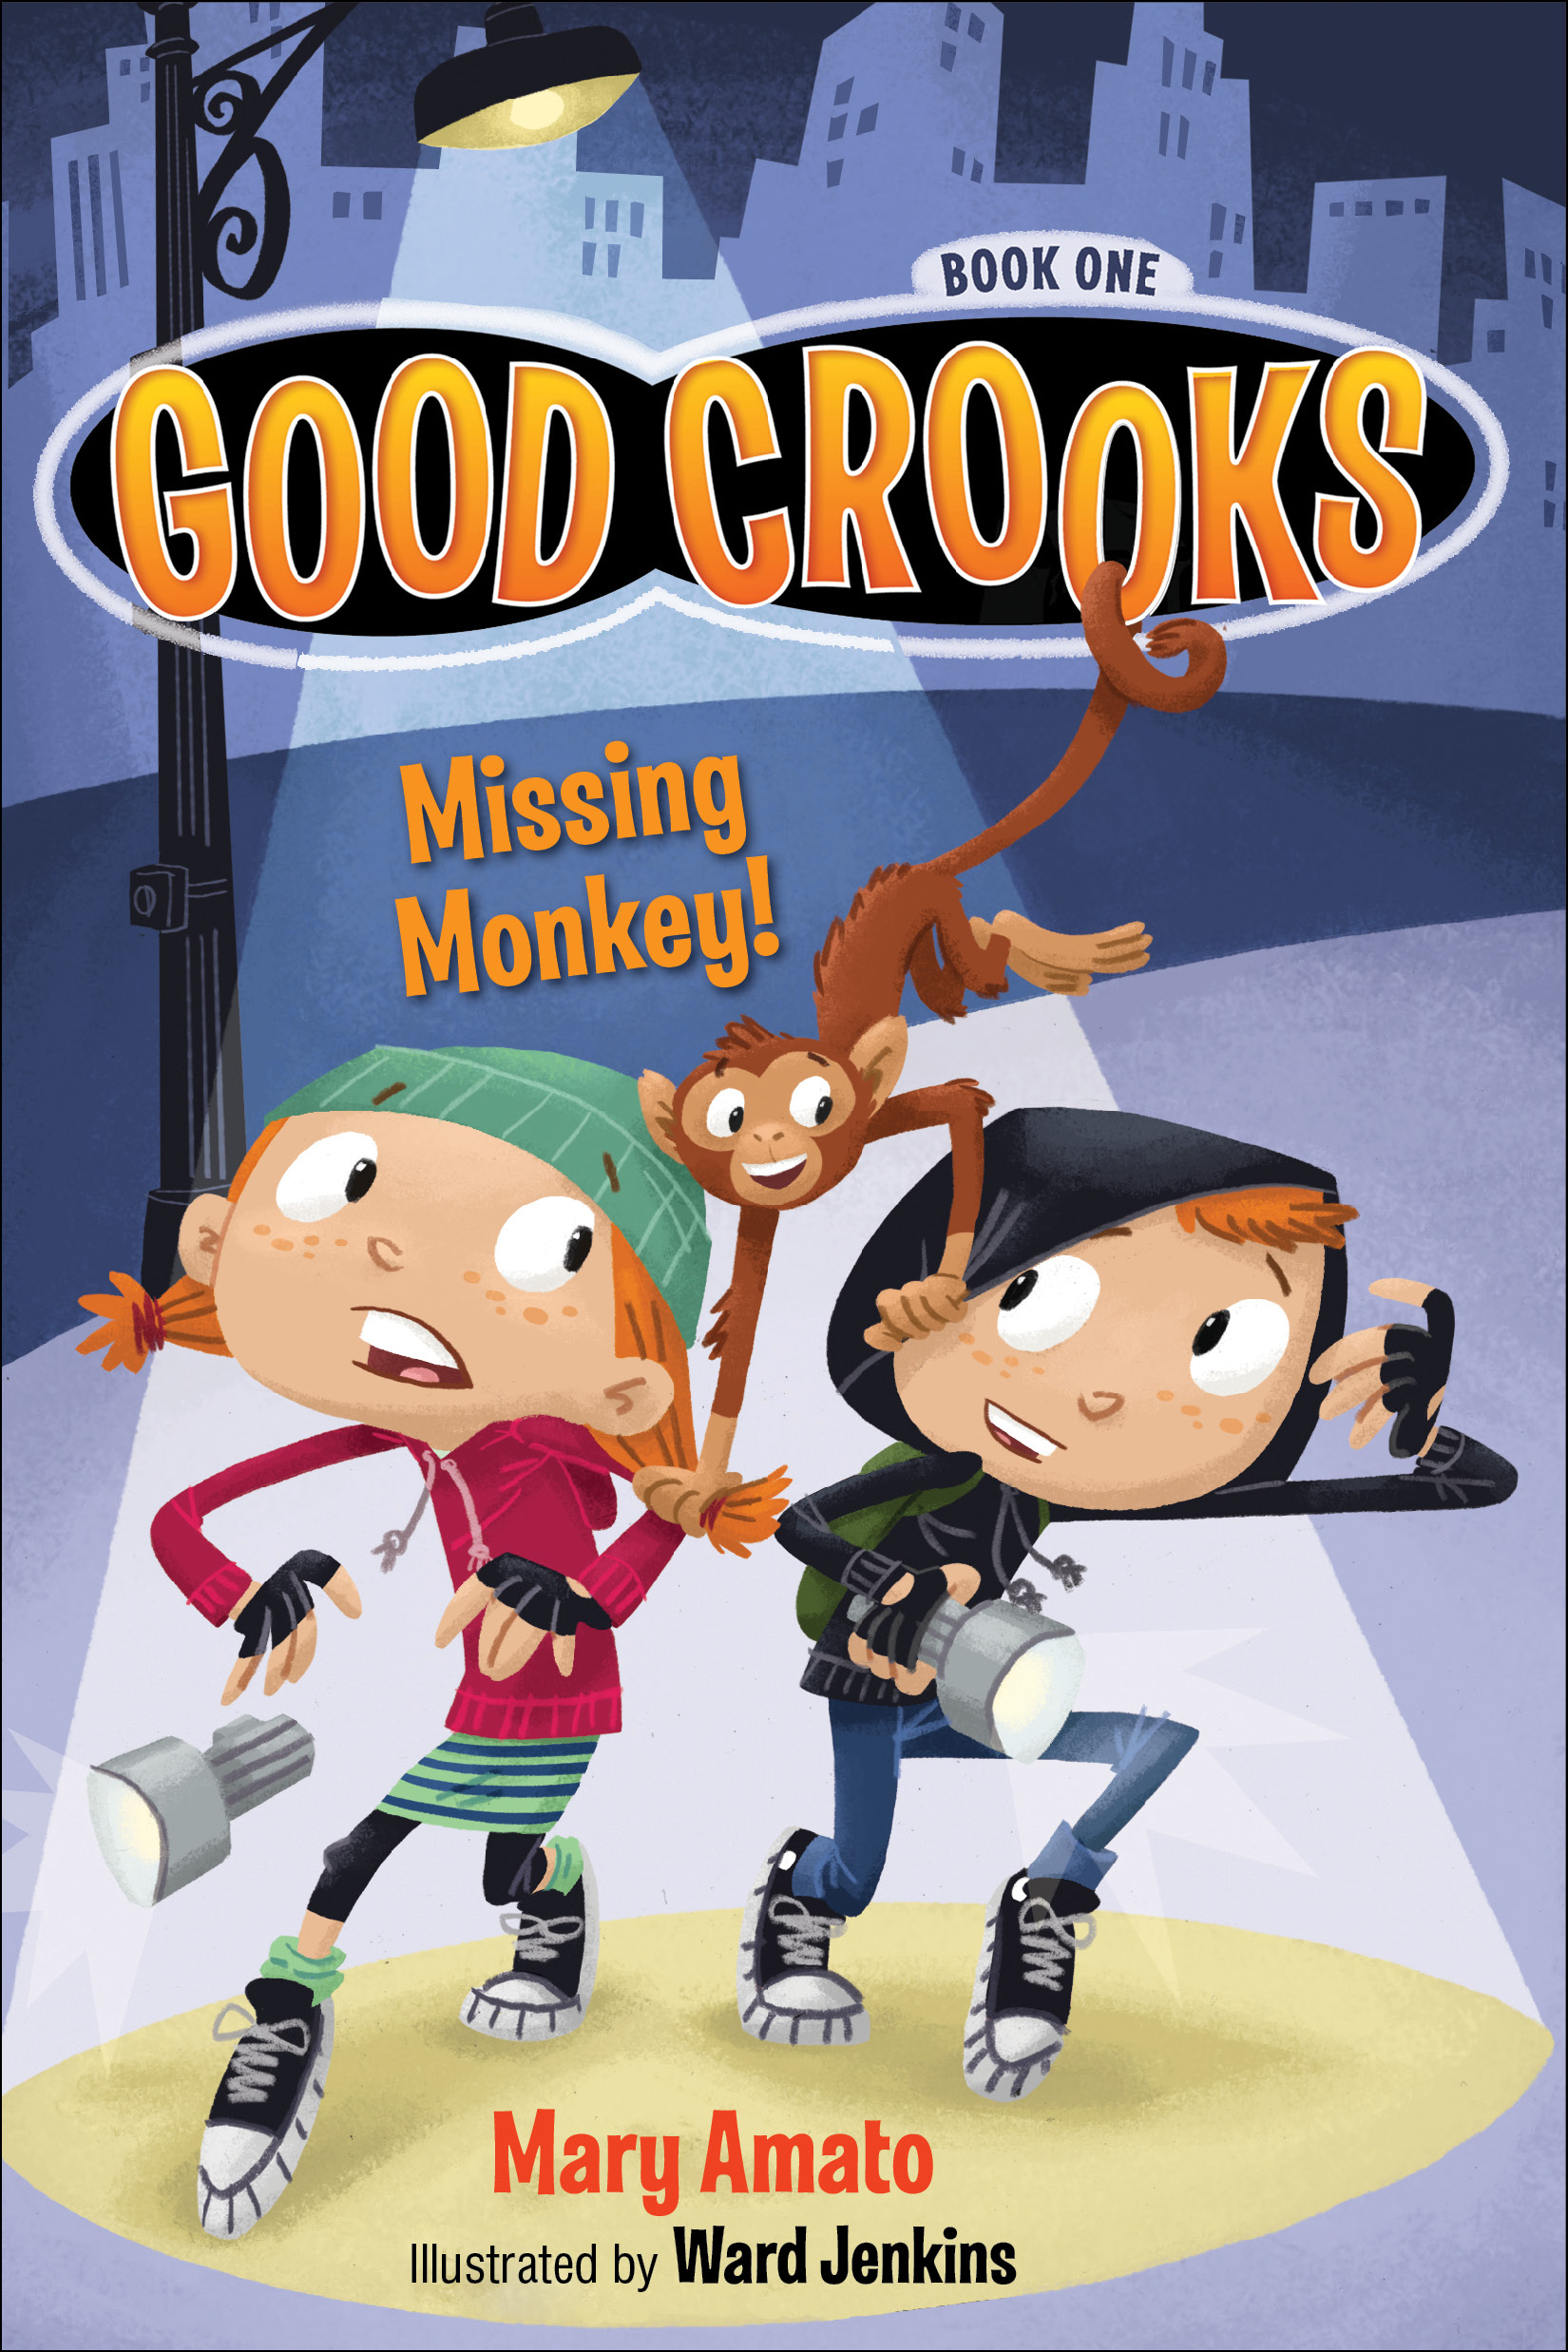 Good Crooks: Missing Monkey by Mary Amato